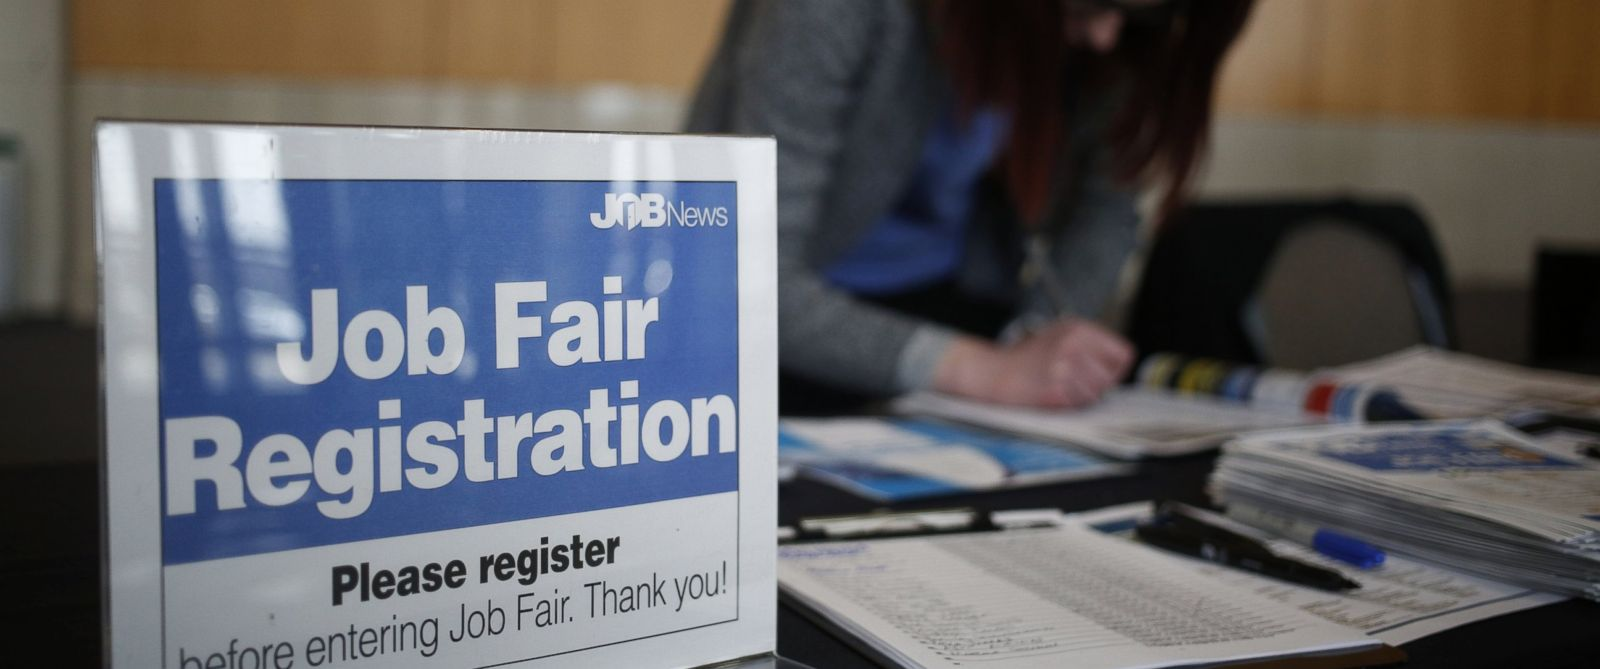 analysis how to interpret trump s first jobs report abc news photo an employee registers job seekers during a job news usa career fair in overland